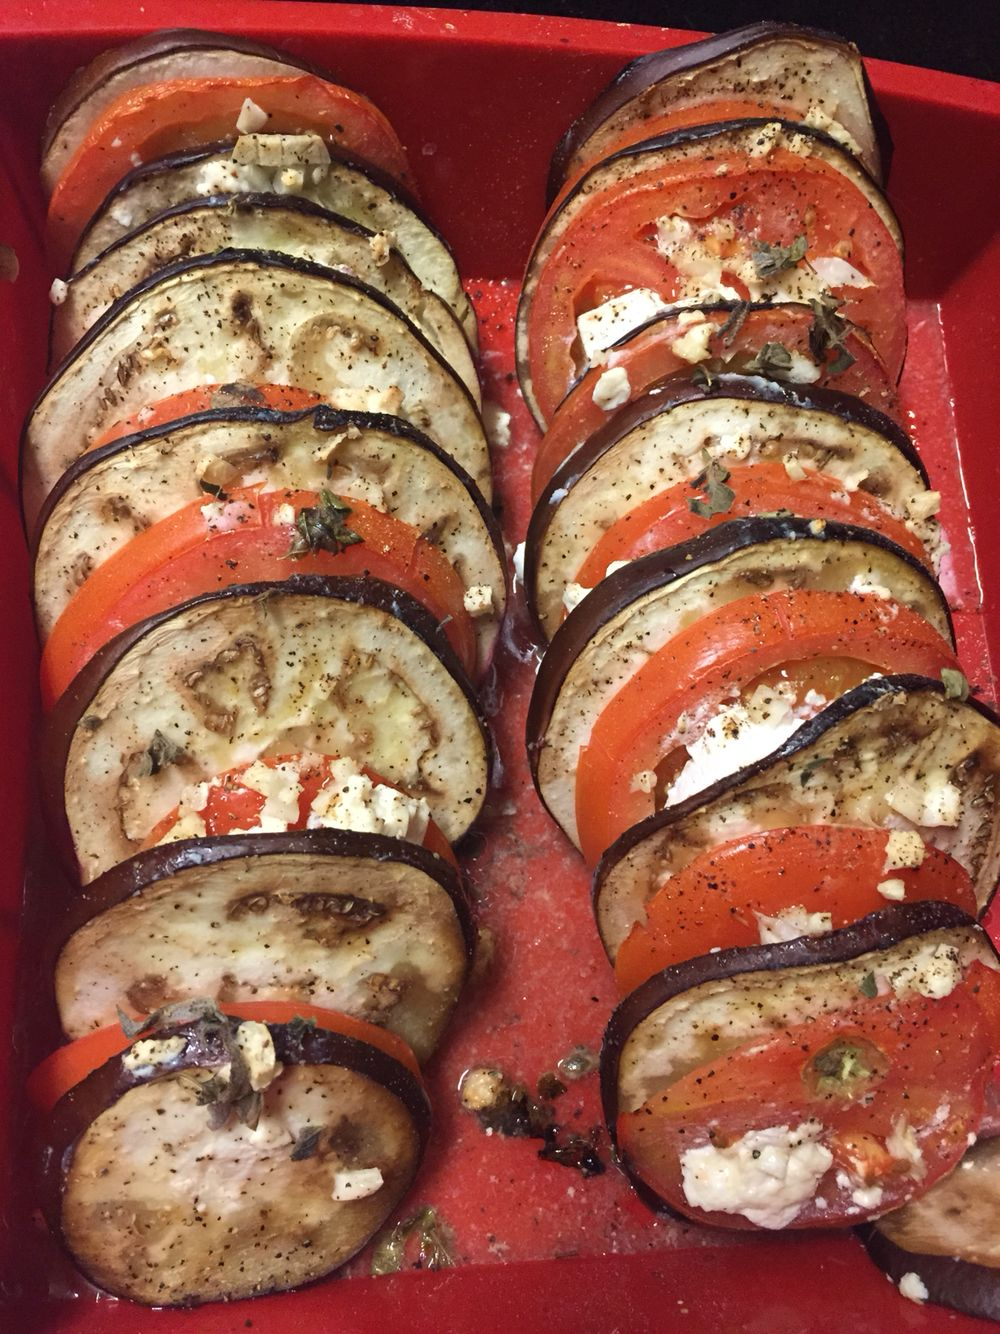 Baked eggplant, tomatoes, and feta cheese.